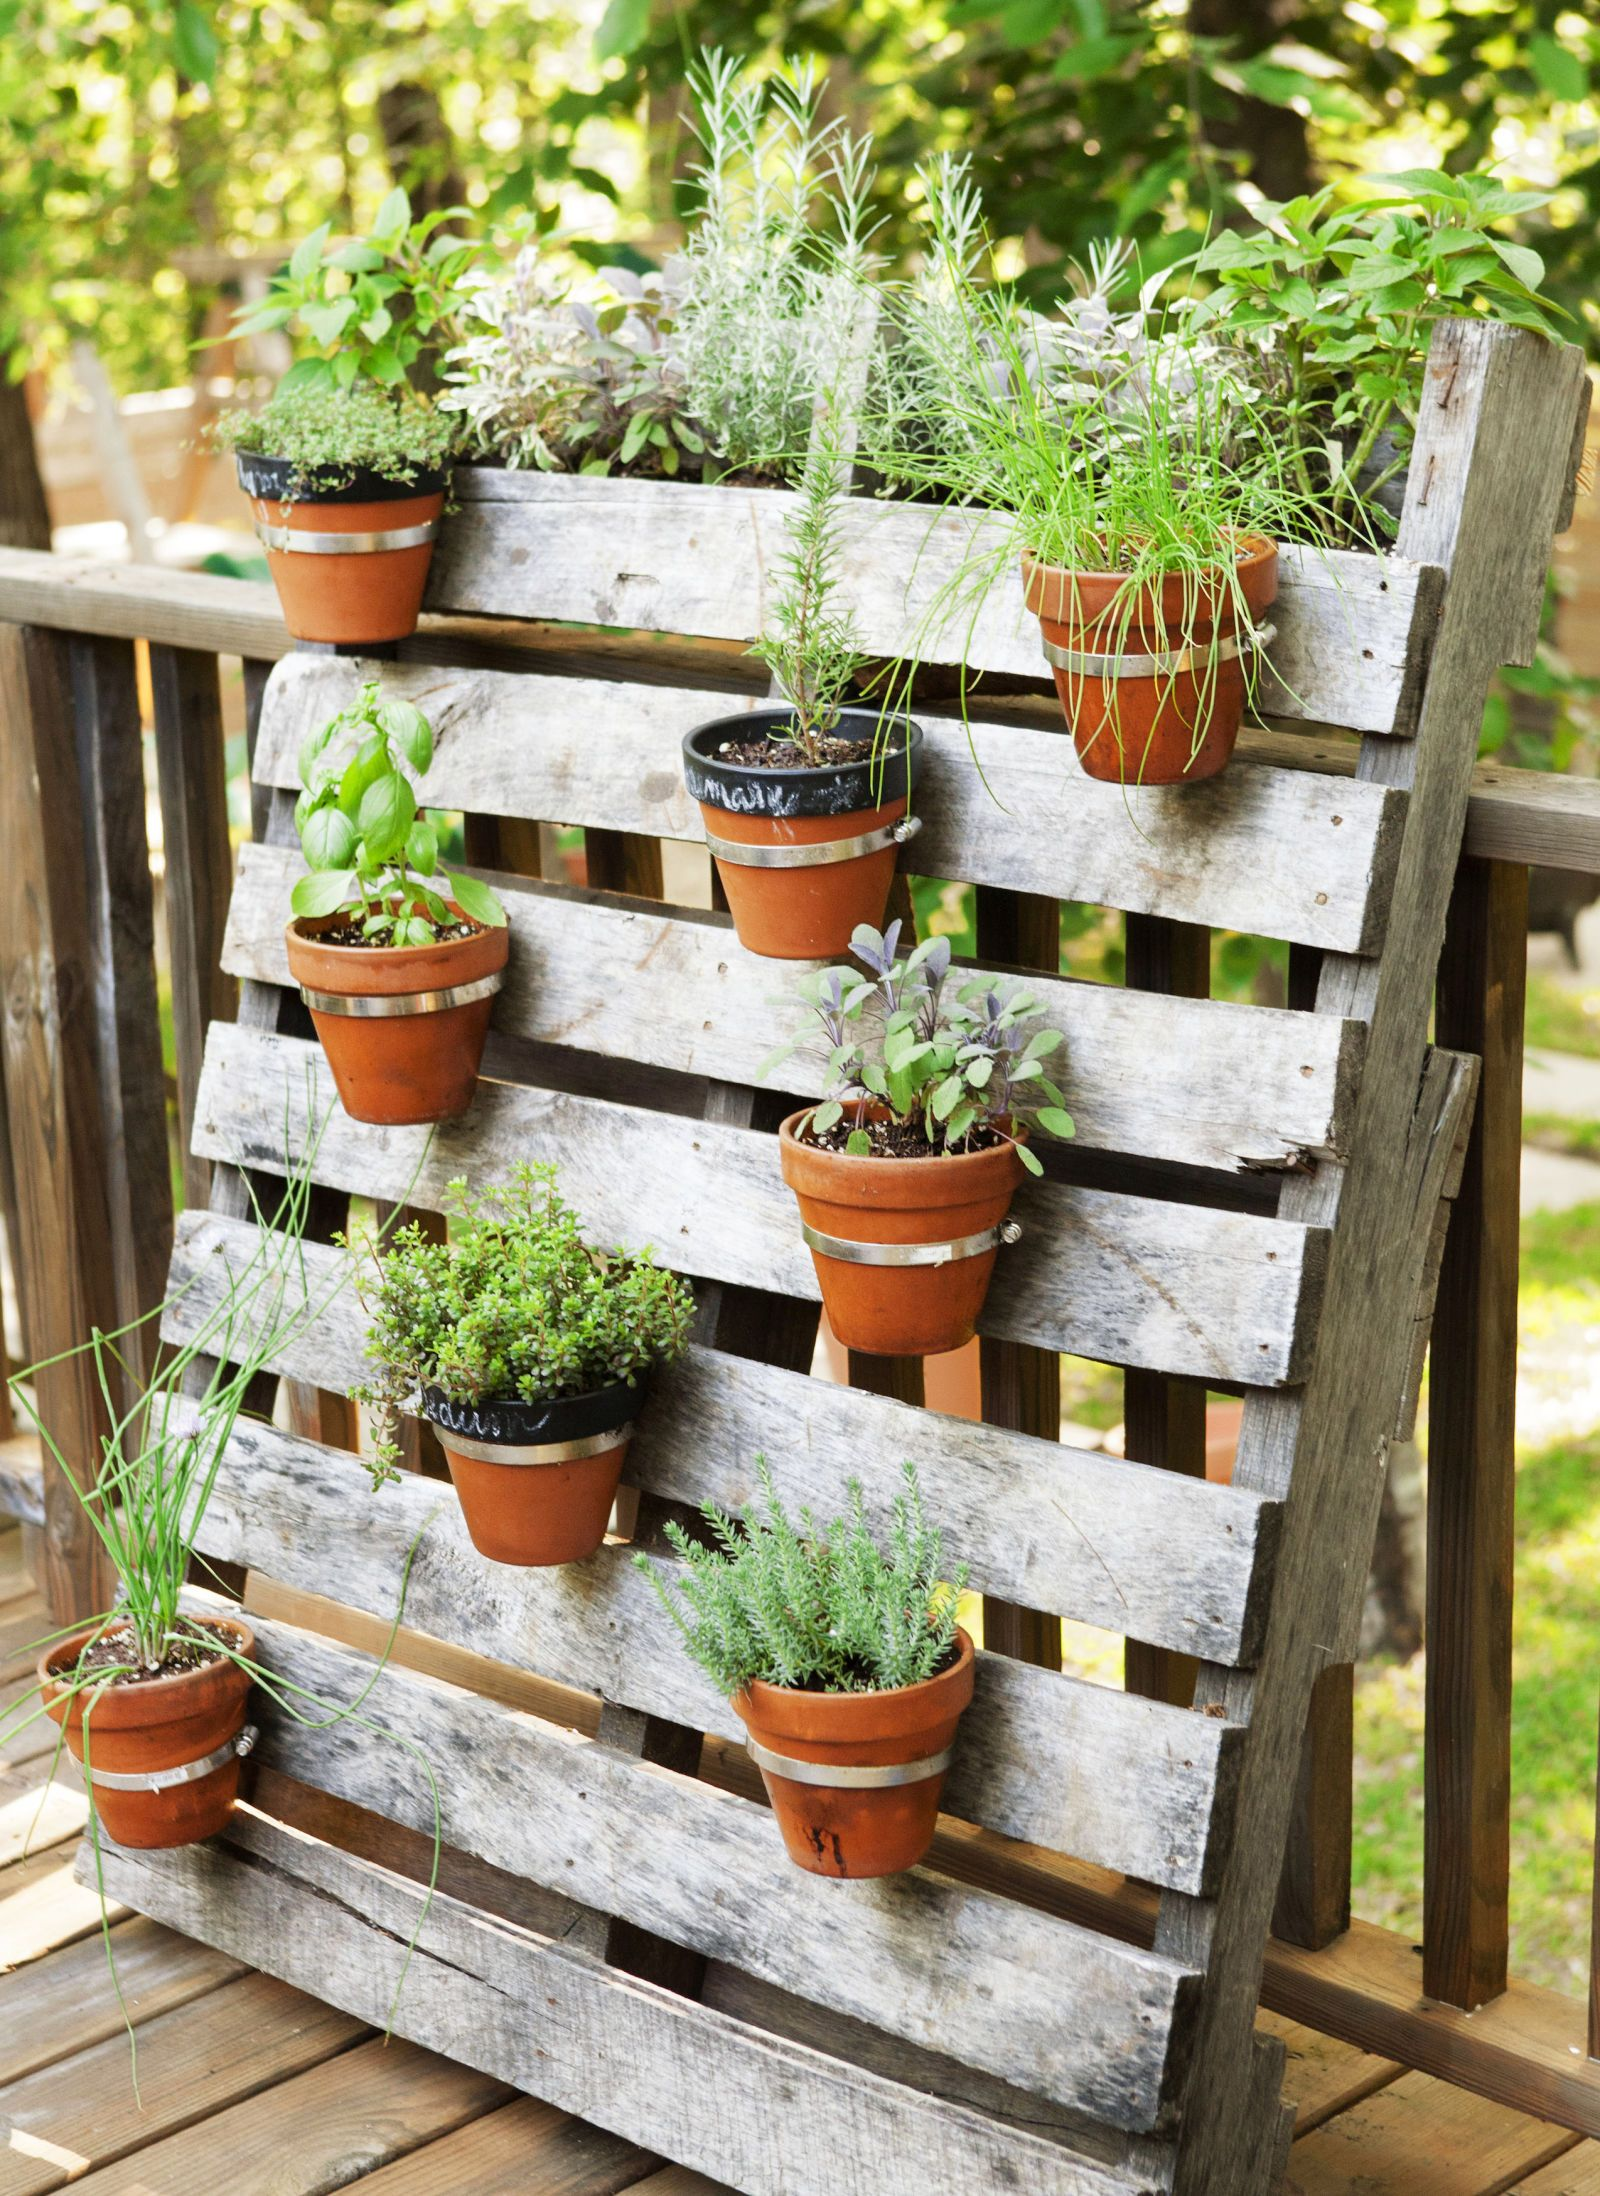 12 easy container garden ideas for every outdoor space good housekeepingwood palletspallets